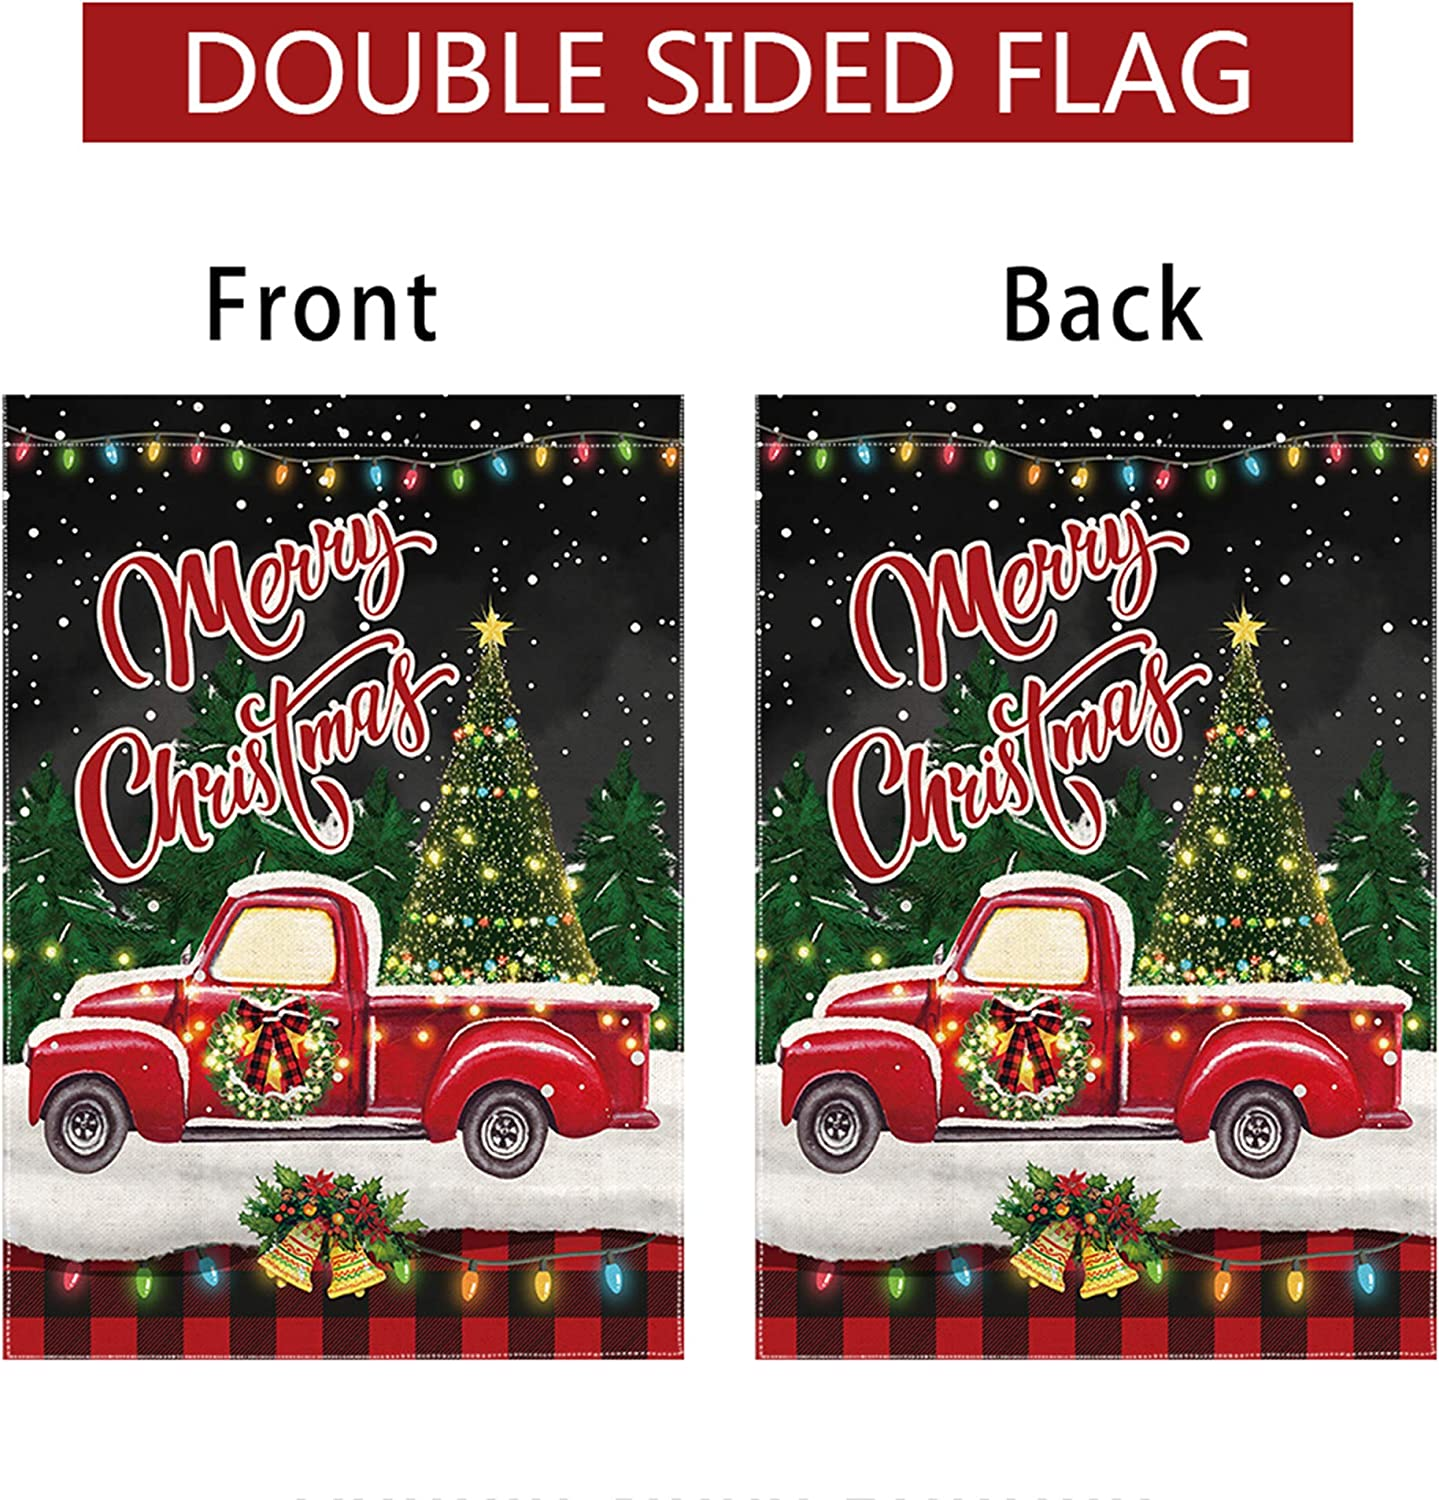 pinata Christmas Garden Flag 12 x 18 Double Sided Winter Holiday Merry Christmas Flag Yard Small Burlap Buffalo Plaid Christmas Decorations Red Truck Seasonal Outdoor Xmas Tree Rustic Farmhouse Banner